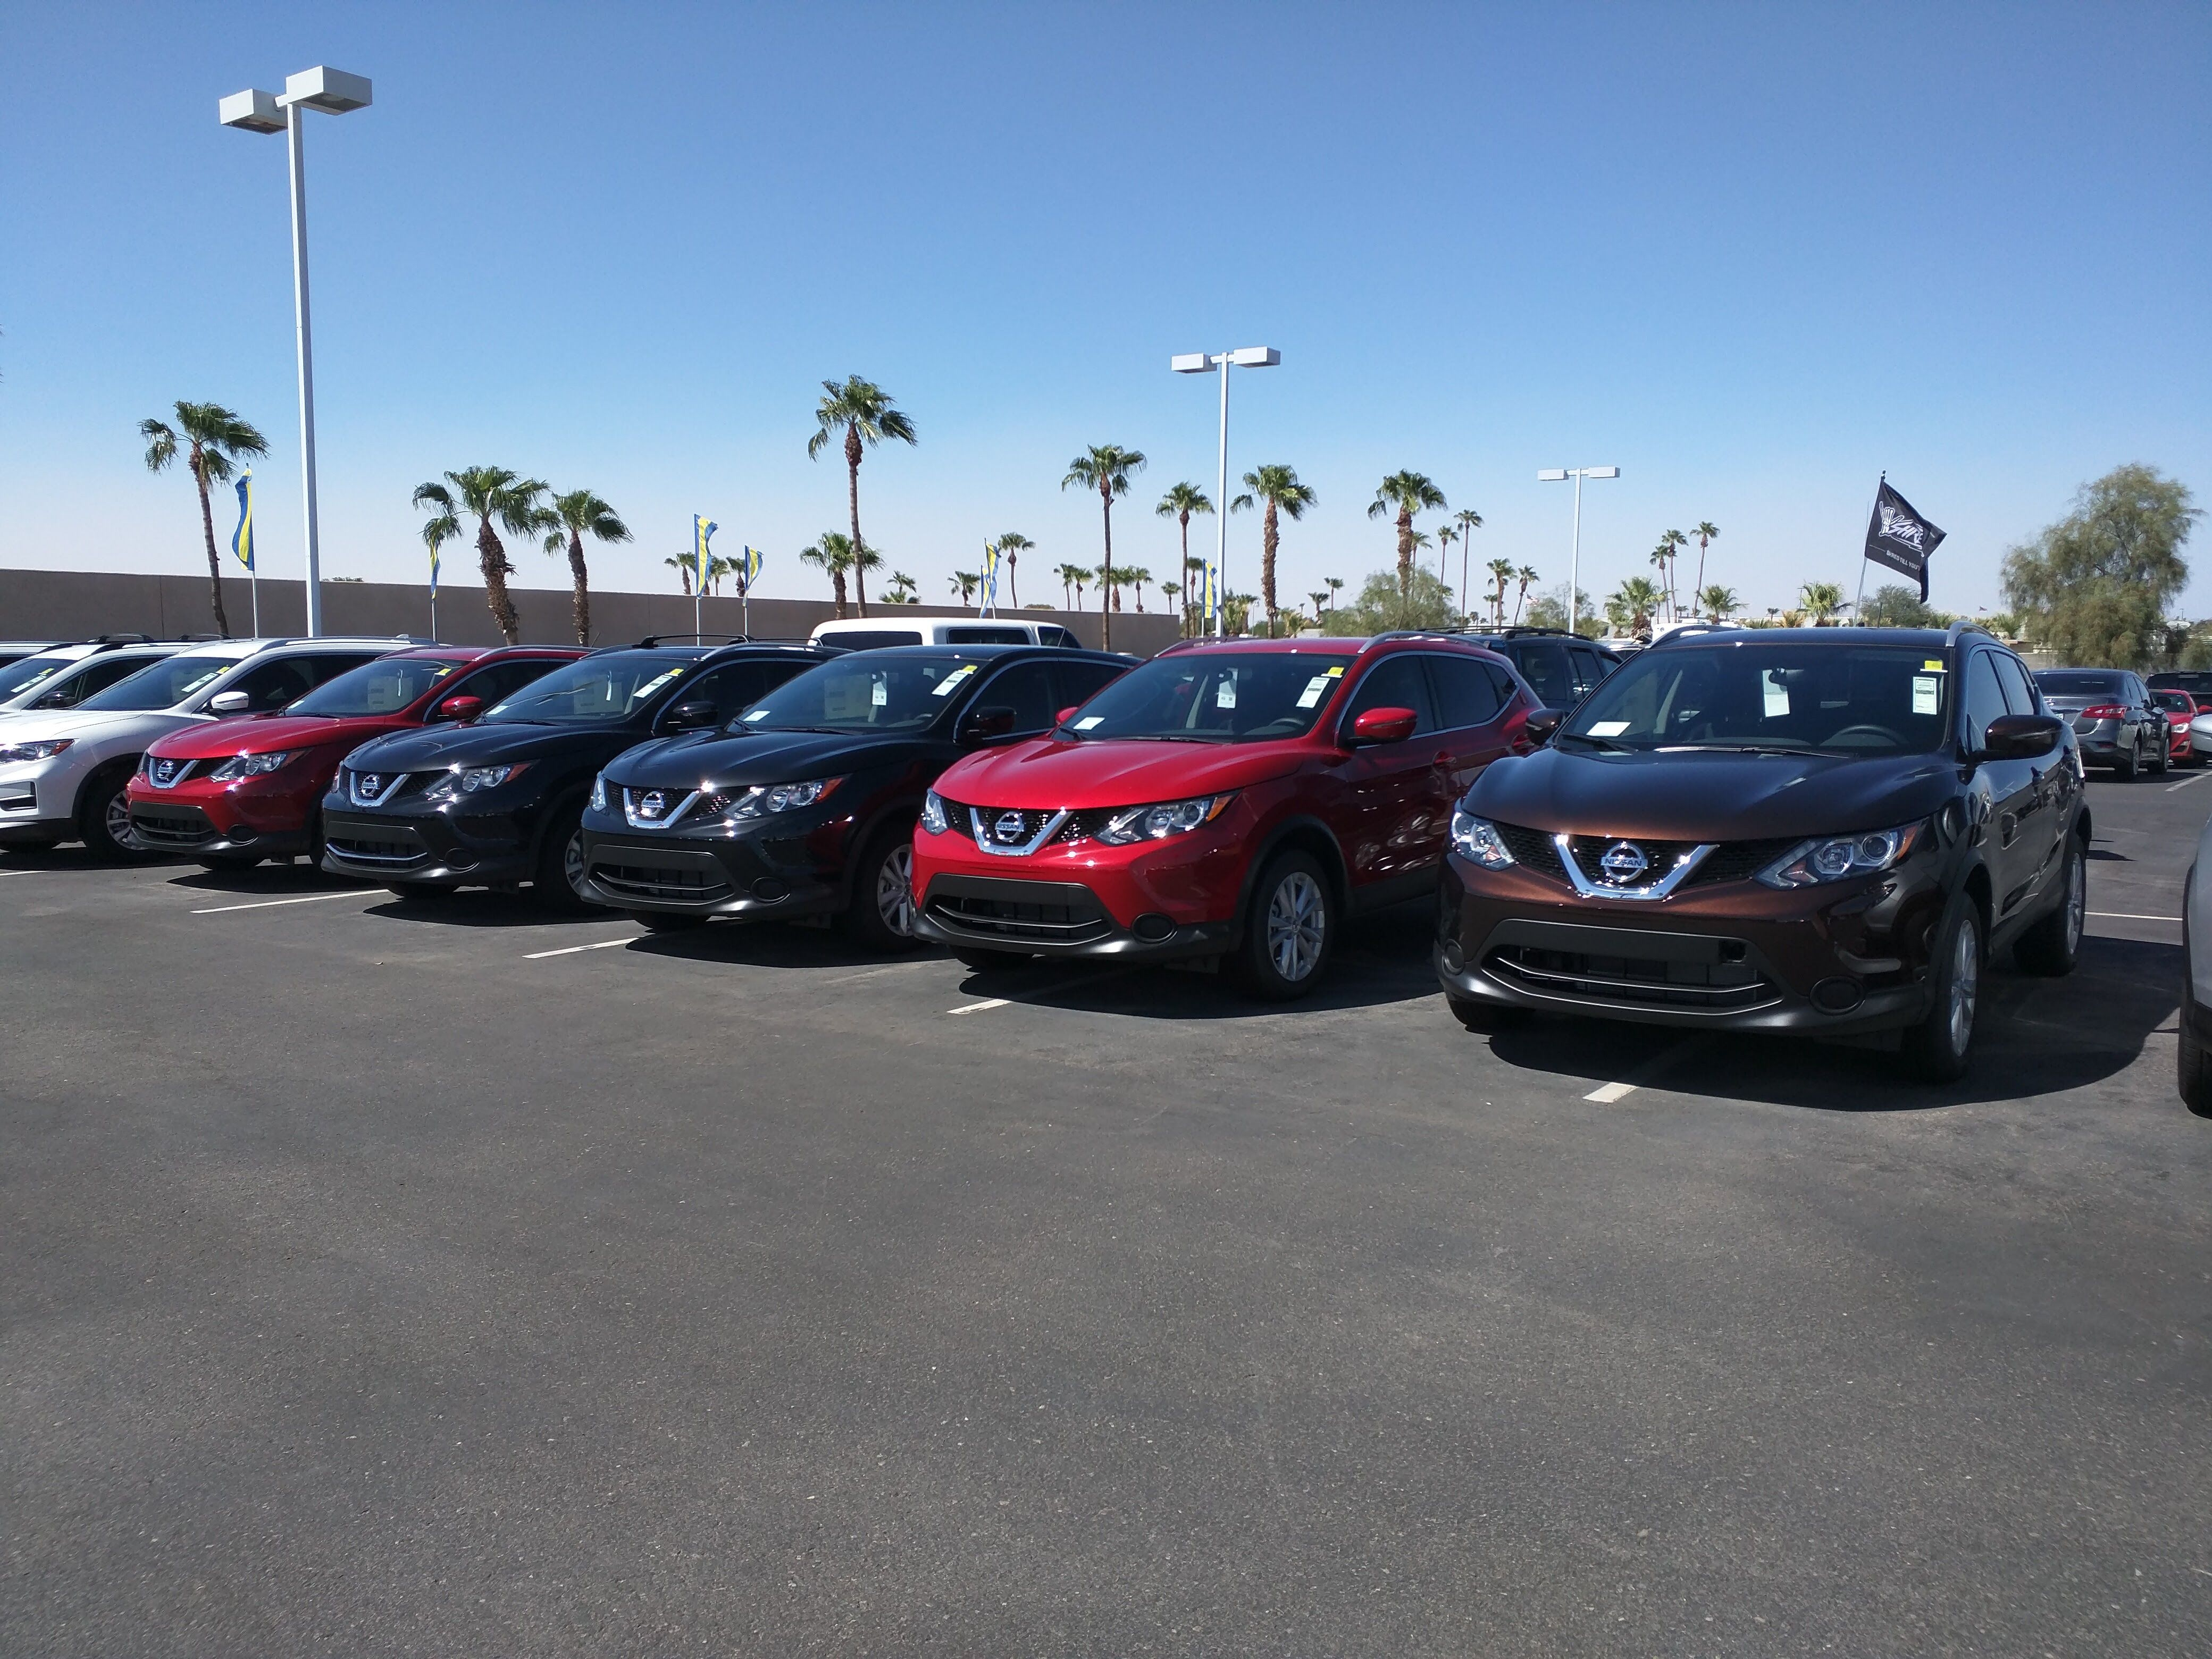 Come See The Selection Of 2017 Nissan Rogue Sports We Have In Stock. #Nissan